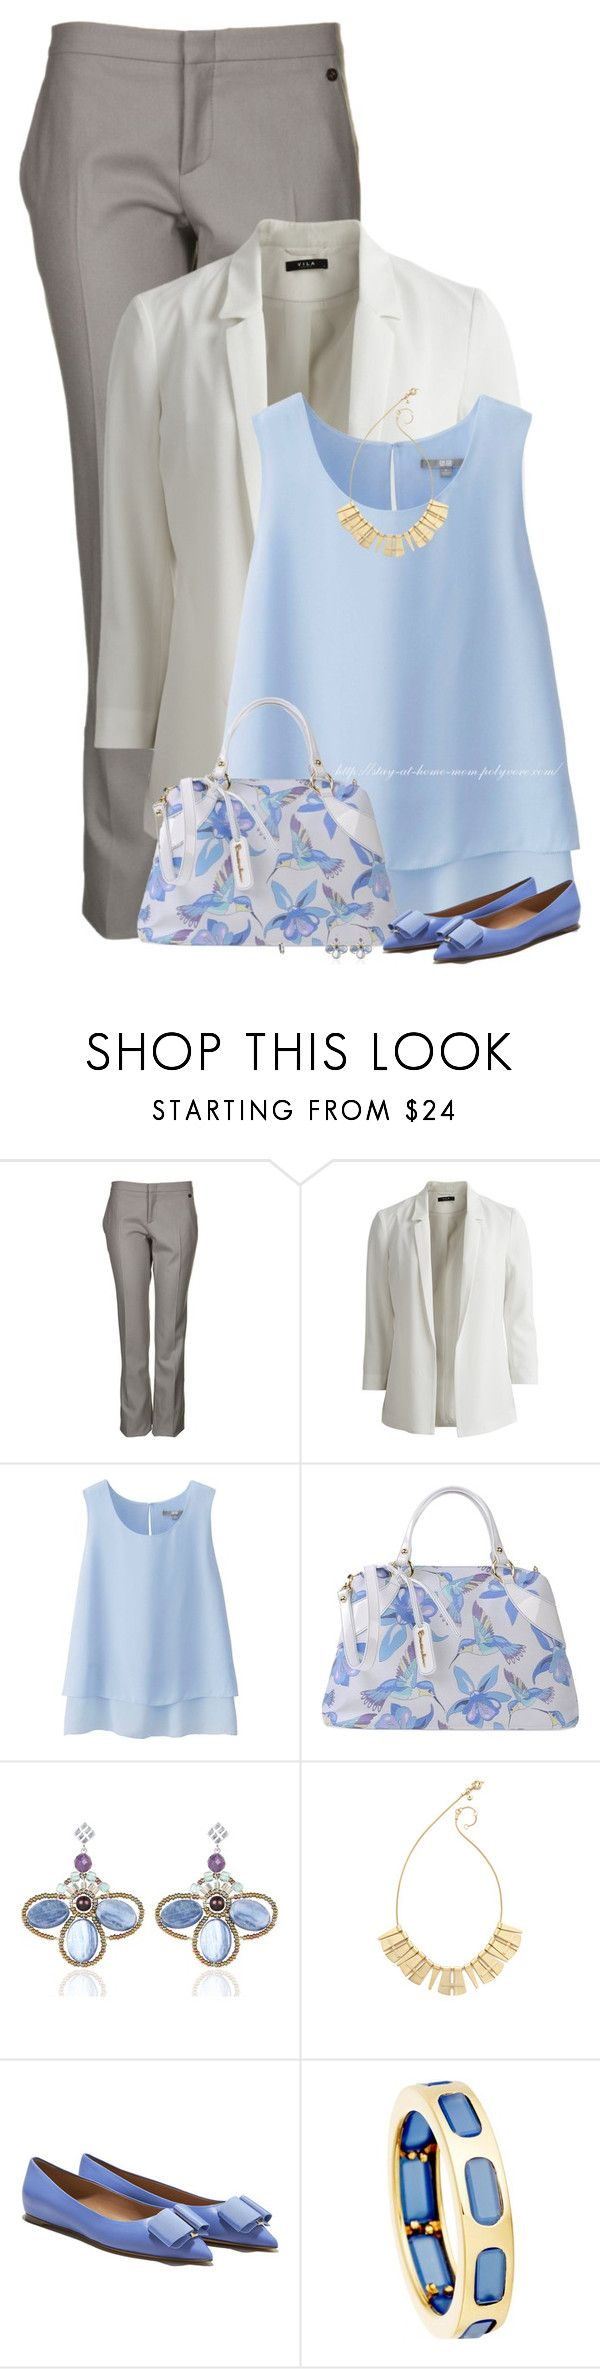 """Hummingbird/Floral Handbag"" by amber-1991 ❤ liked on Polyvore featuring Gucci, VILA, Uniqlo, Braccialini, Ziio, Madewell, Salvatore Ferragamo and Astley Clarke"